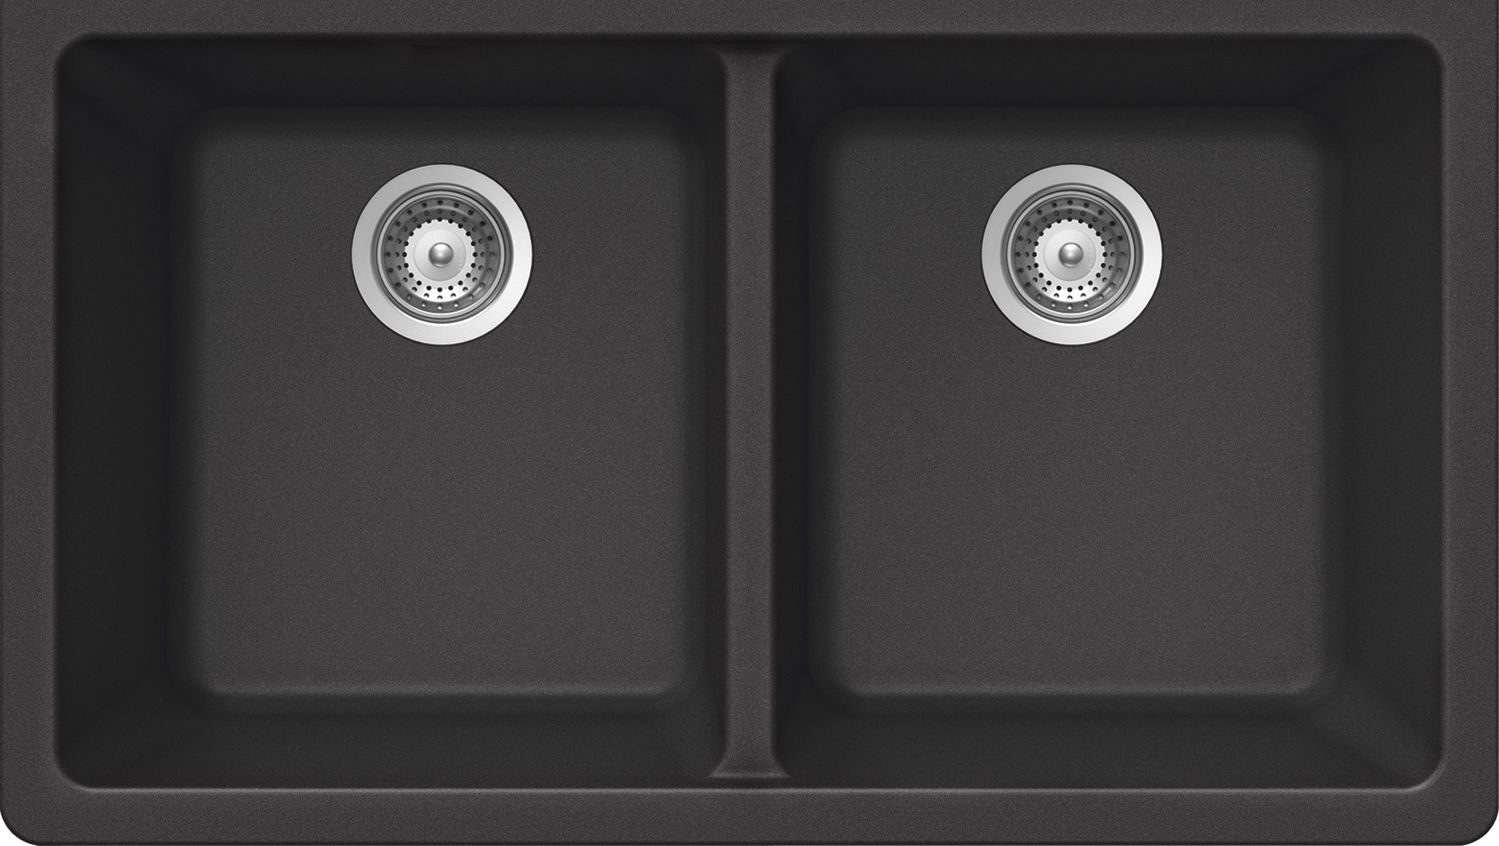 granite composite sink is easy no harsh chemical ano200u midnight - Granite Composite Sinks